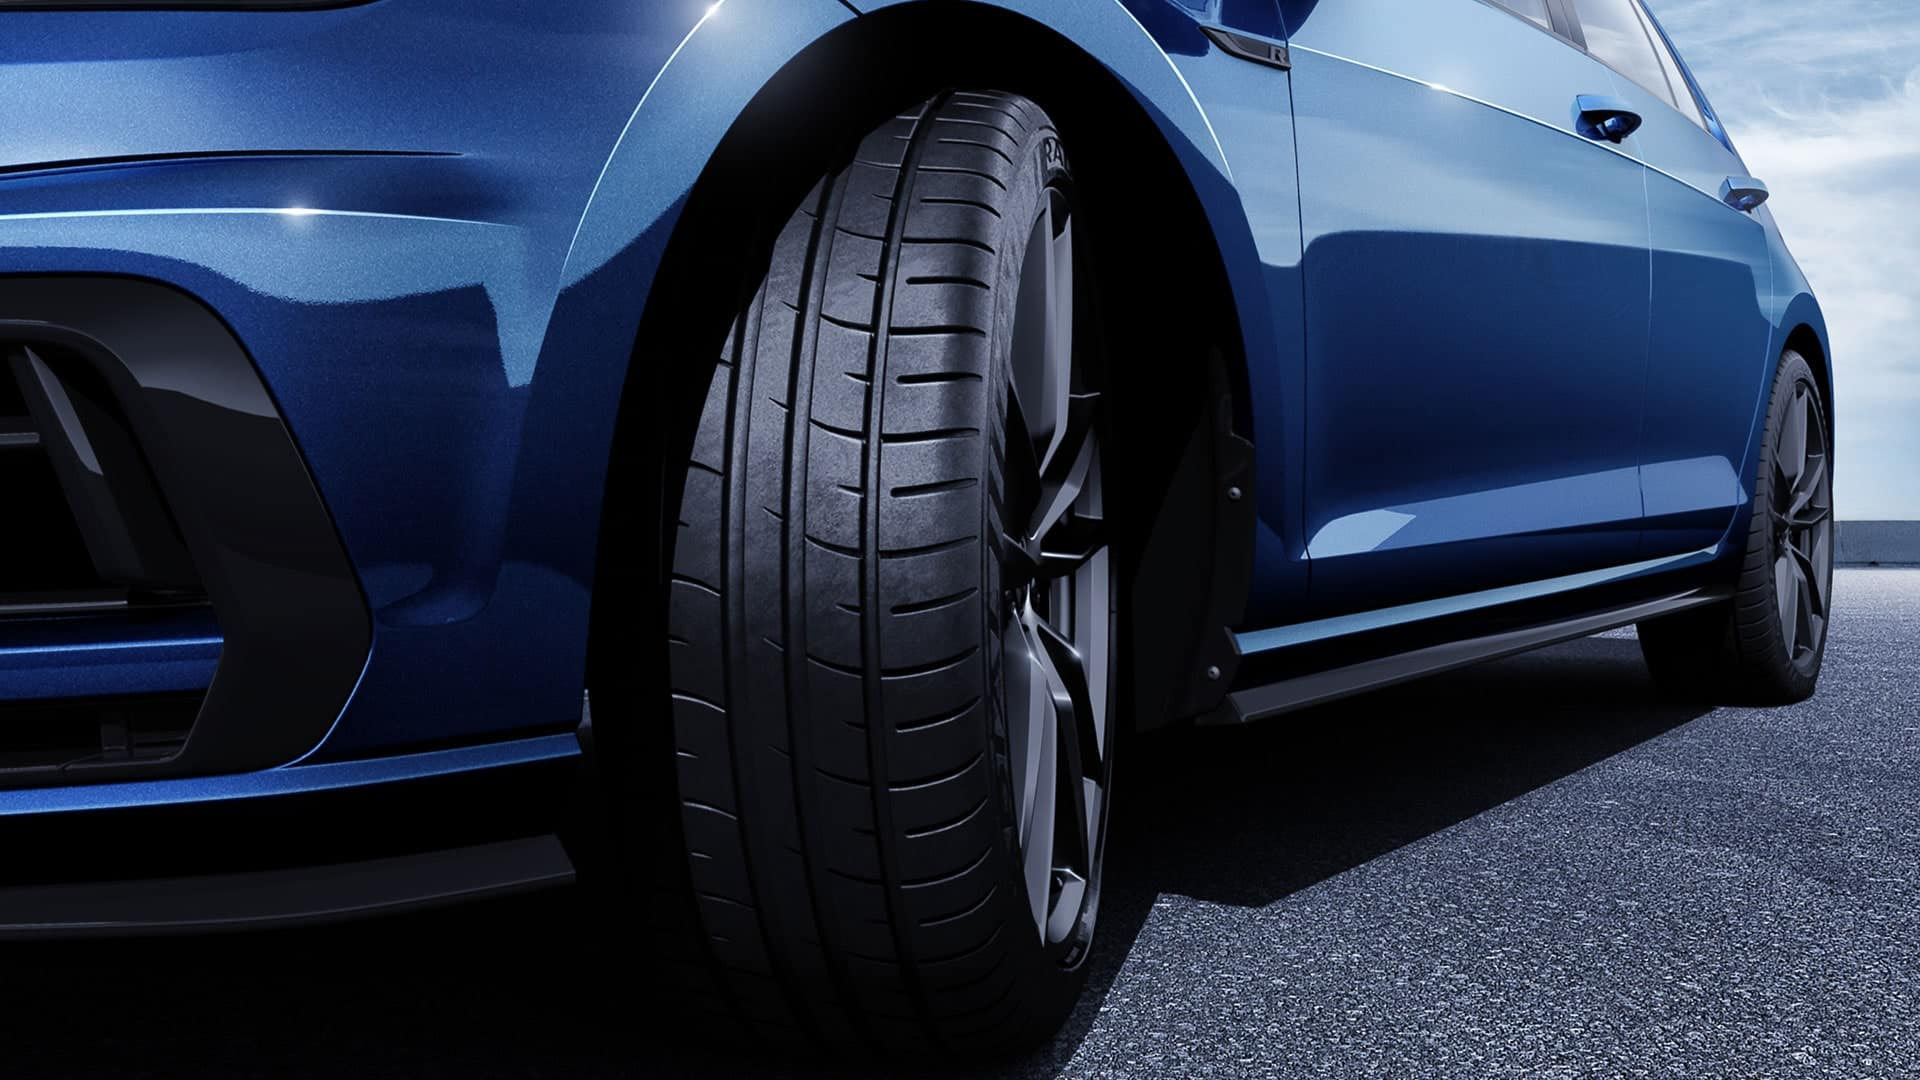 2019 VW Golf R summer tires